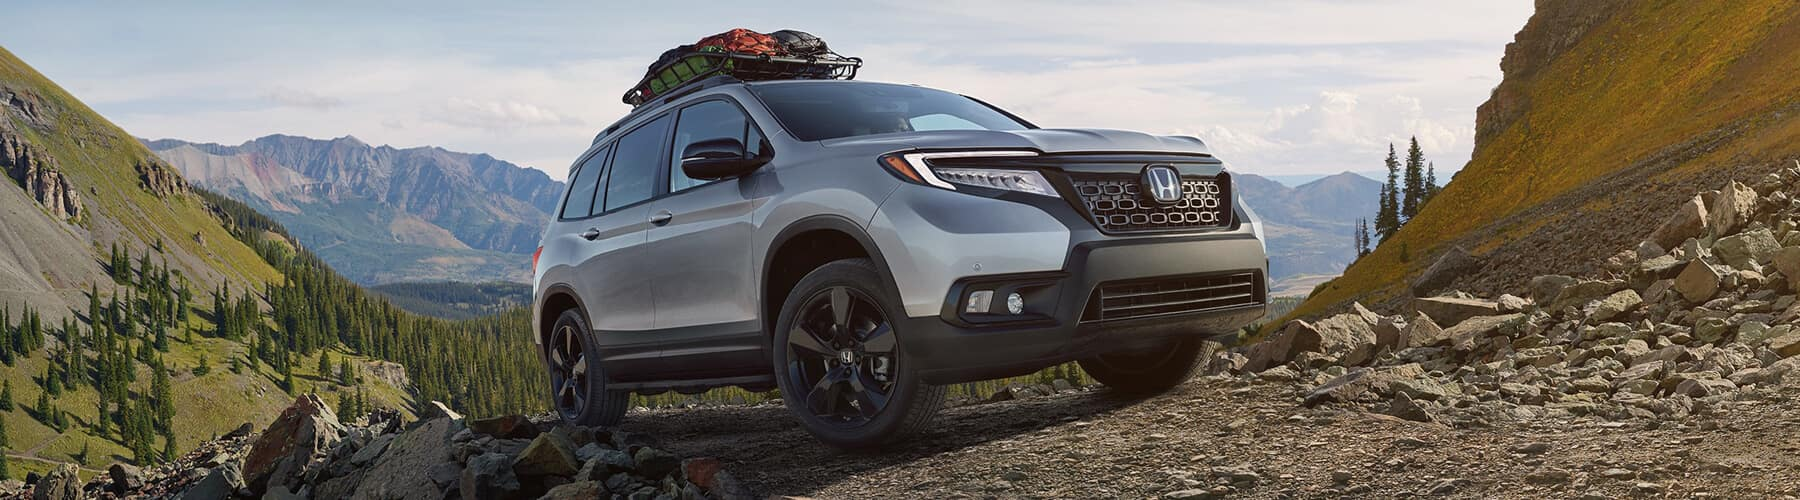 2019 Honda Passport Slider